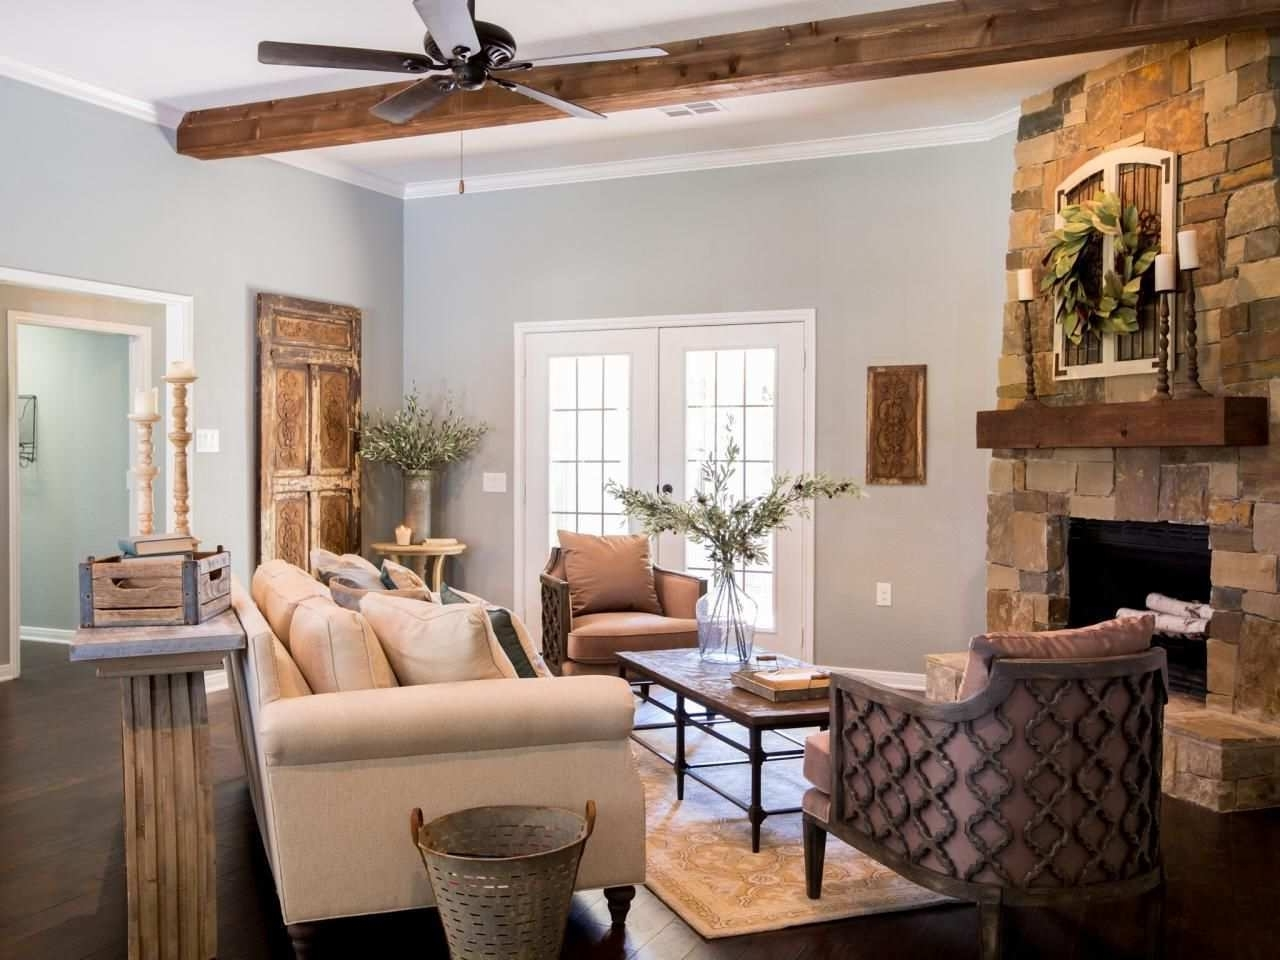 Popular Joanna Gaines Ceiling Fans Beautiful Fixer Upper Yours Mine Ours And Inside Joanna Gaines Outdoor Ceiling Fans (Gallery 6 of 20)